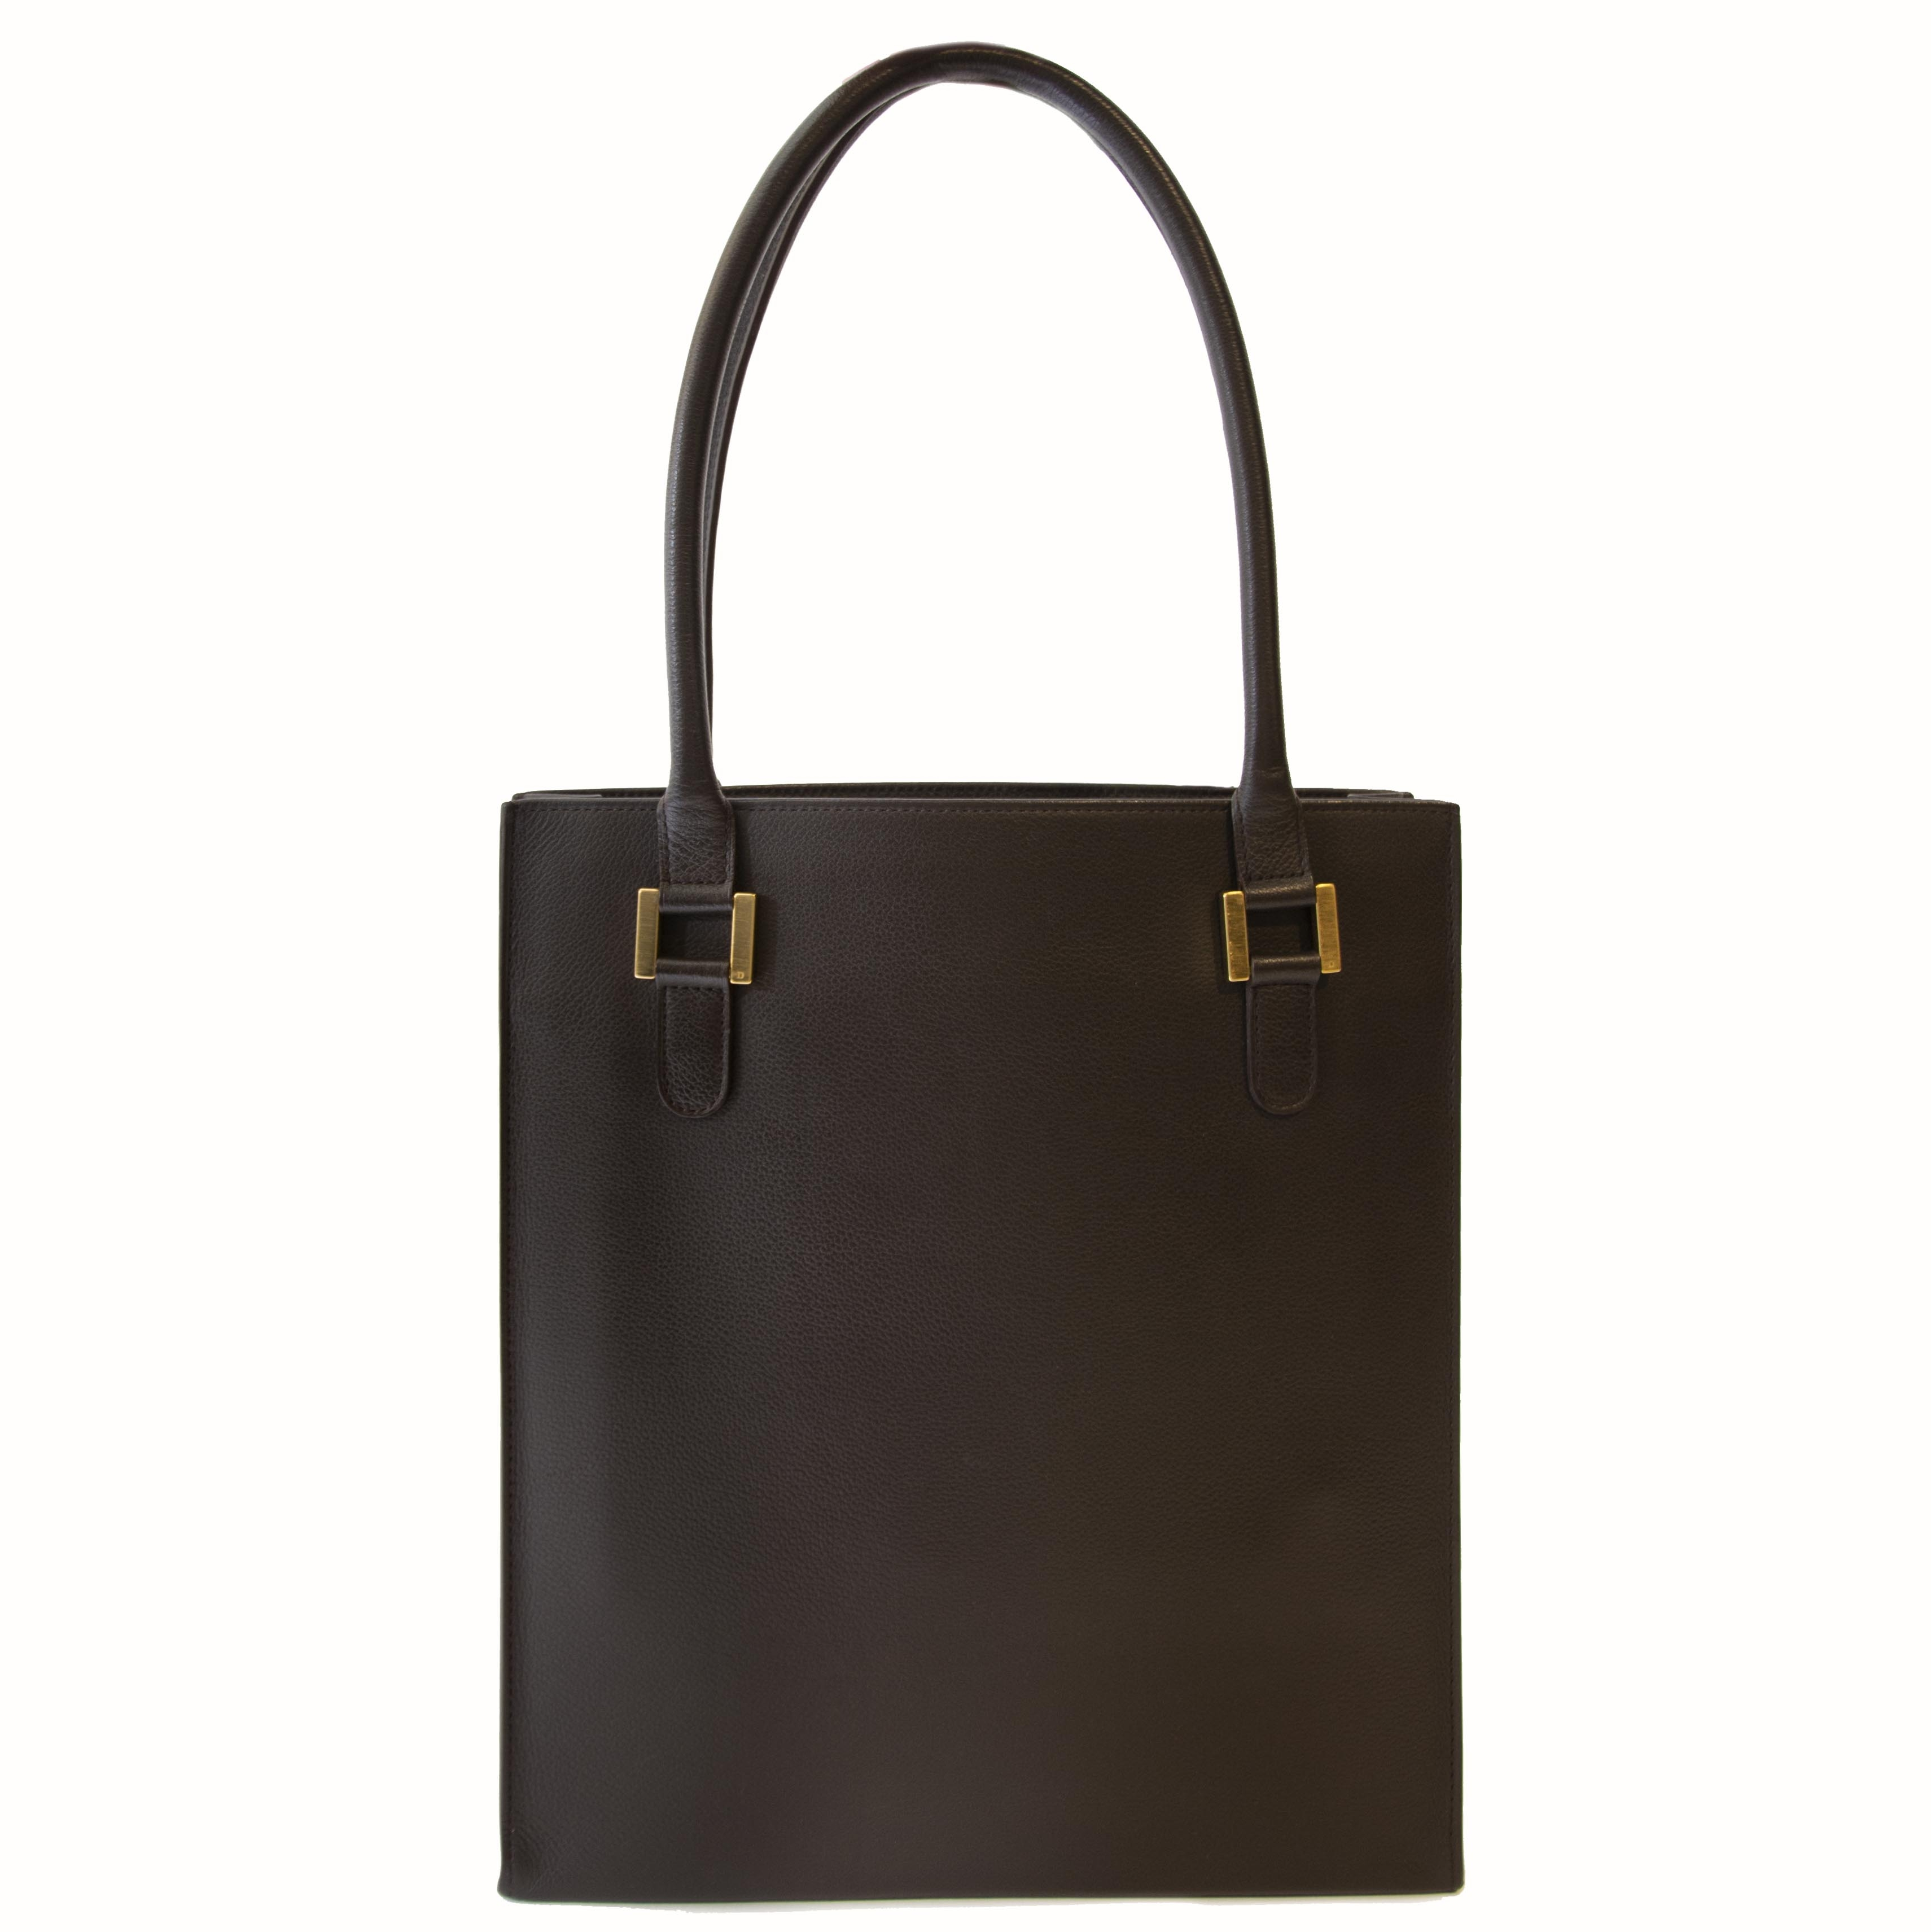 Authentic second hand Delvaux Jeff brown leather right price safe online shopping LabelLOV webshop luxury brands shopping Antwerp